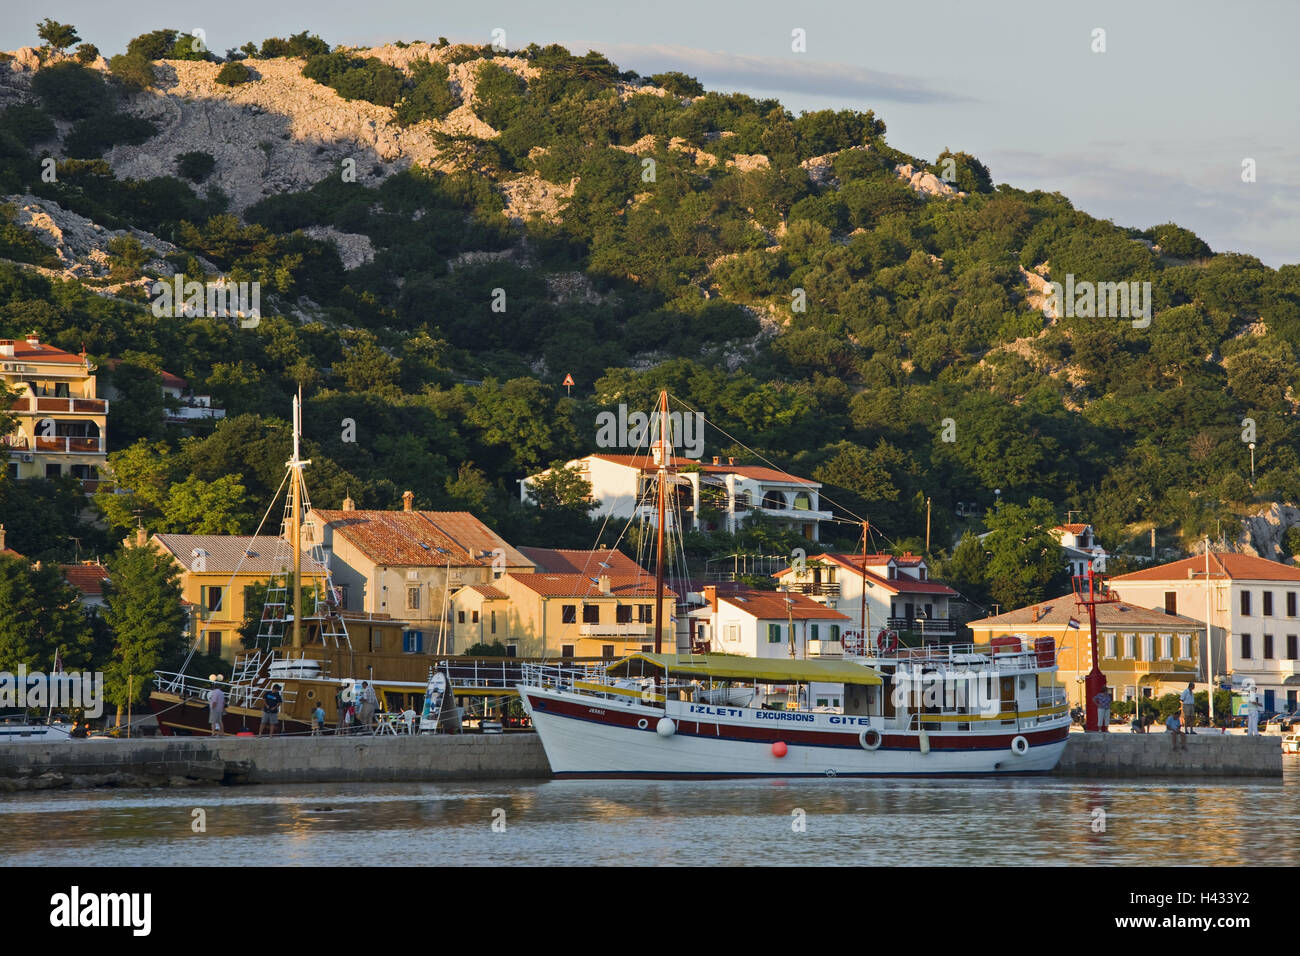 Croatia, Kvarner bay, island Krk, city Baska, ship, harbour, - Stock Image